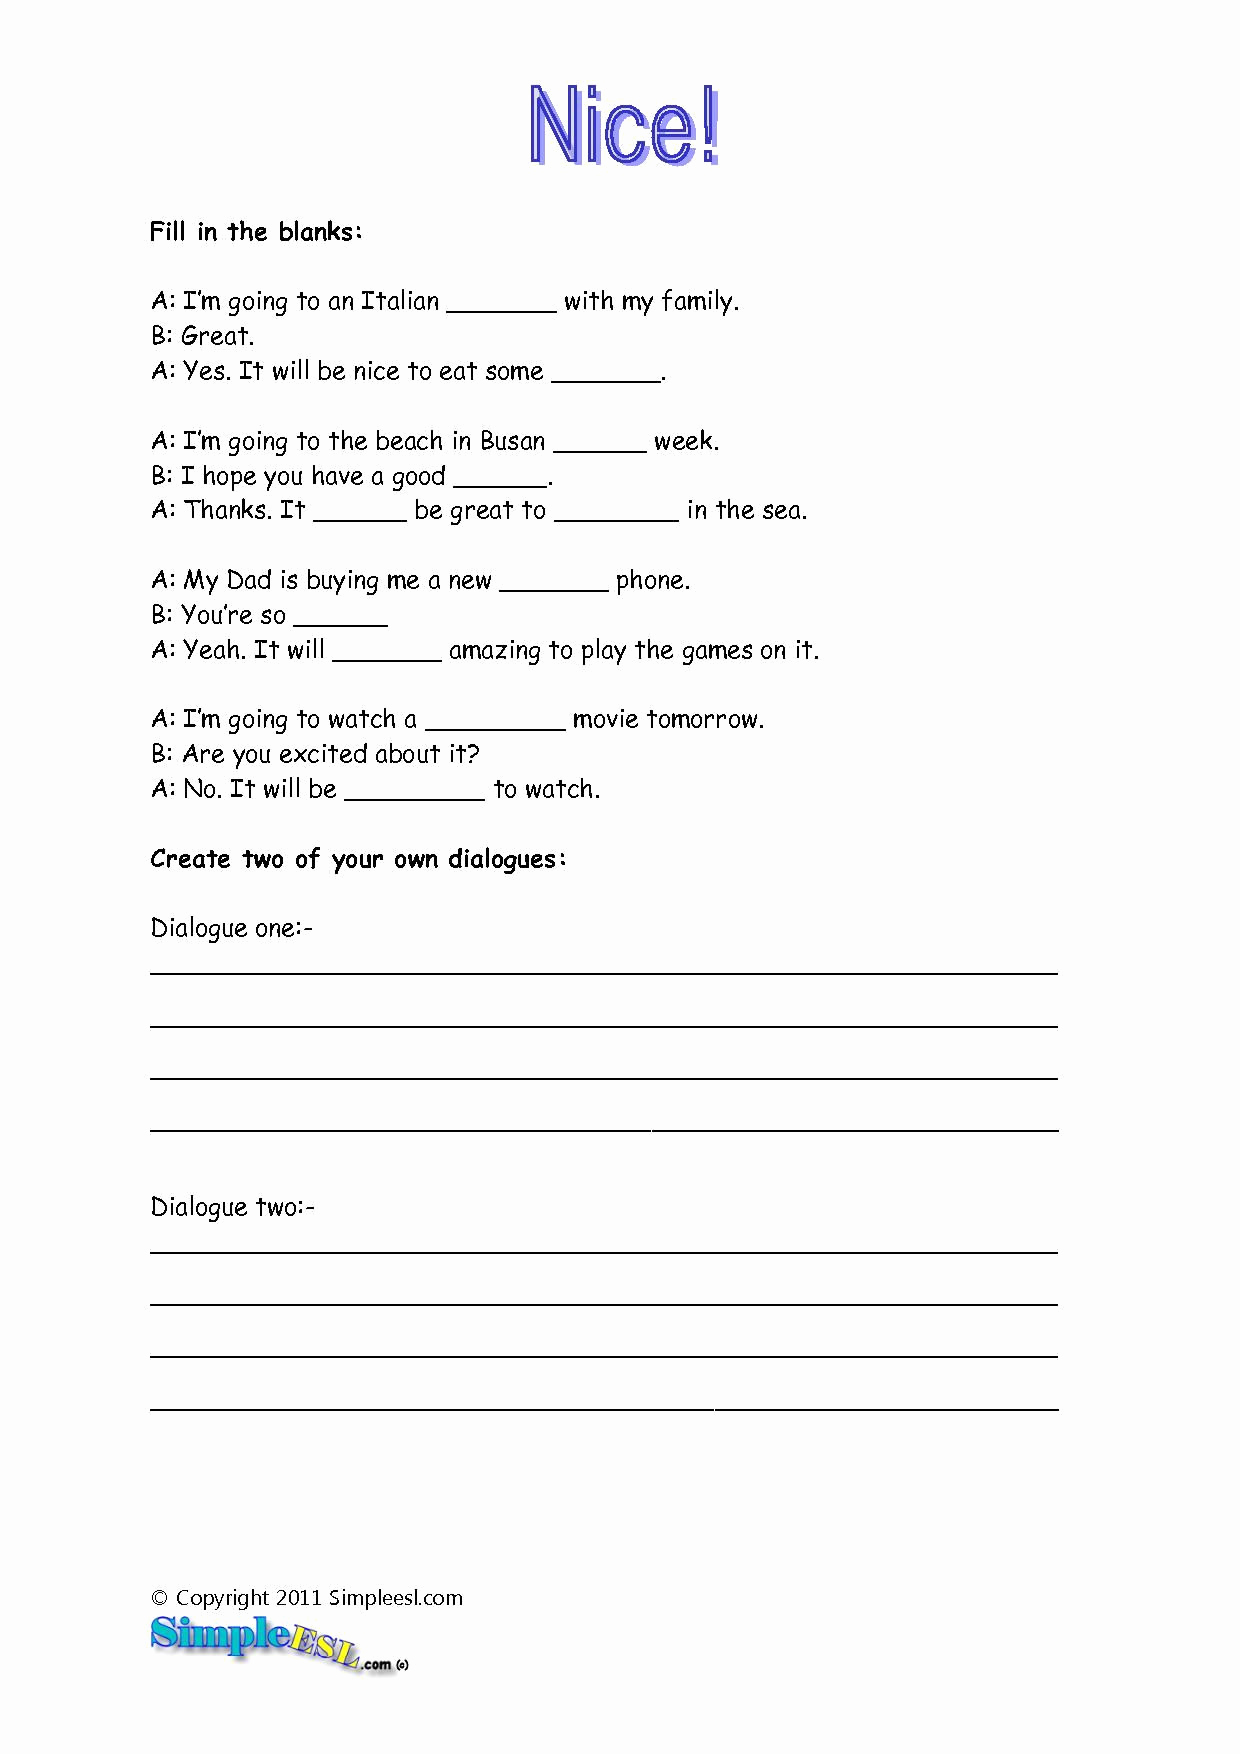 Super Teacher Worksheets Idioms Awesome 30 Super Teacher Worksheets Idioms